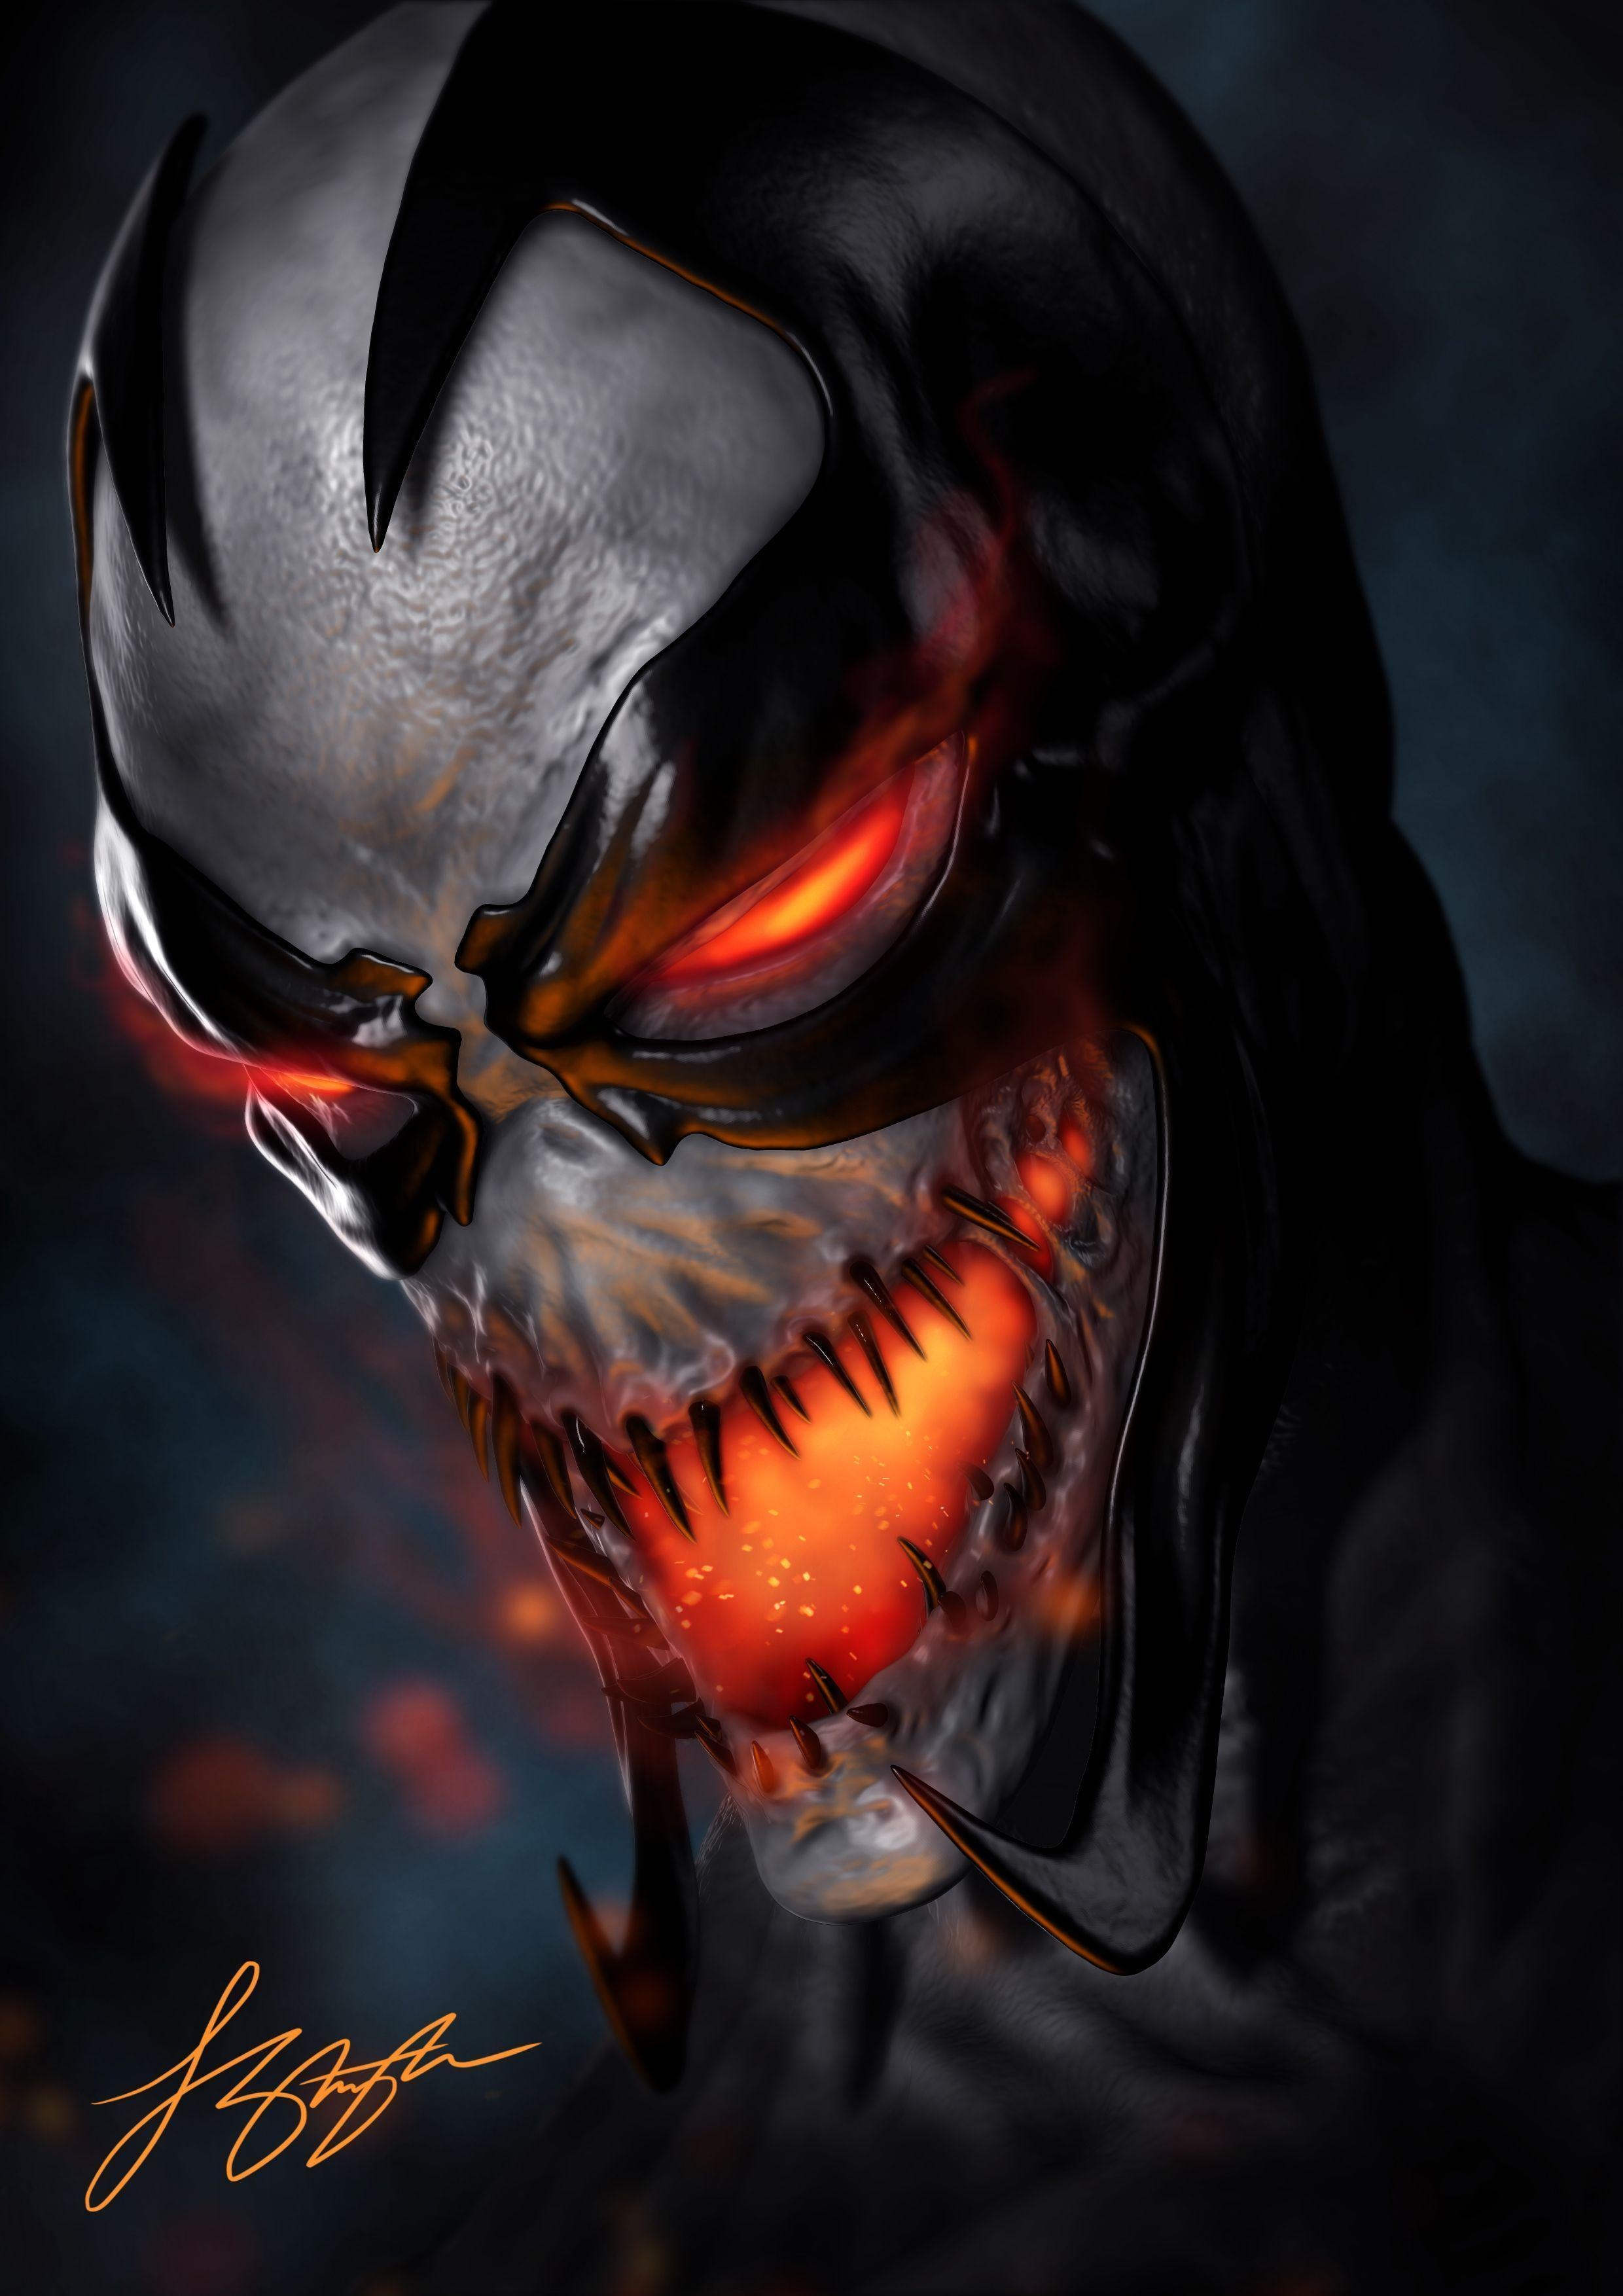 98 Anti Venom Wallpapers On Wallpapersafari